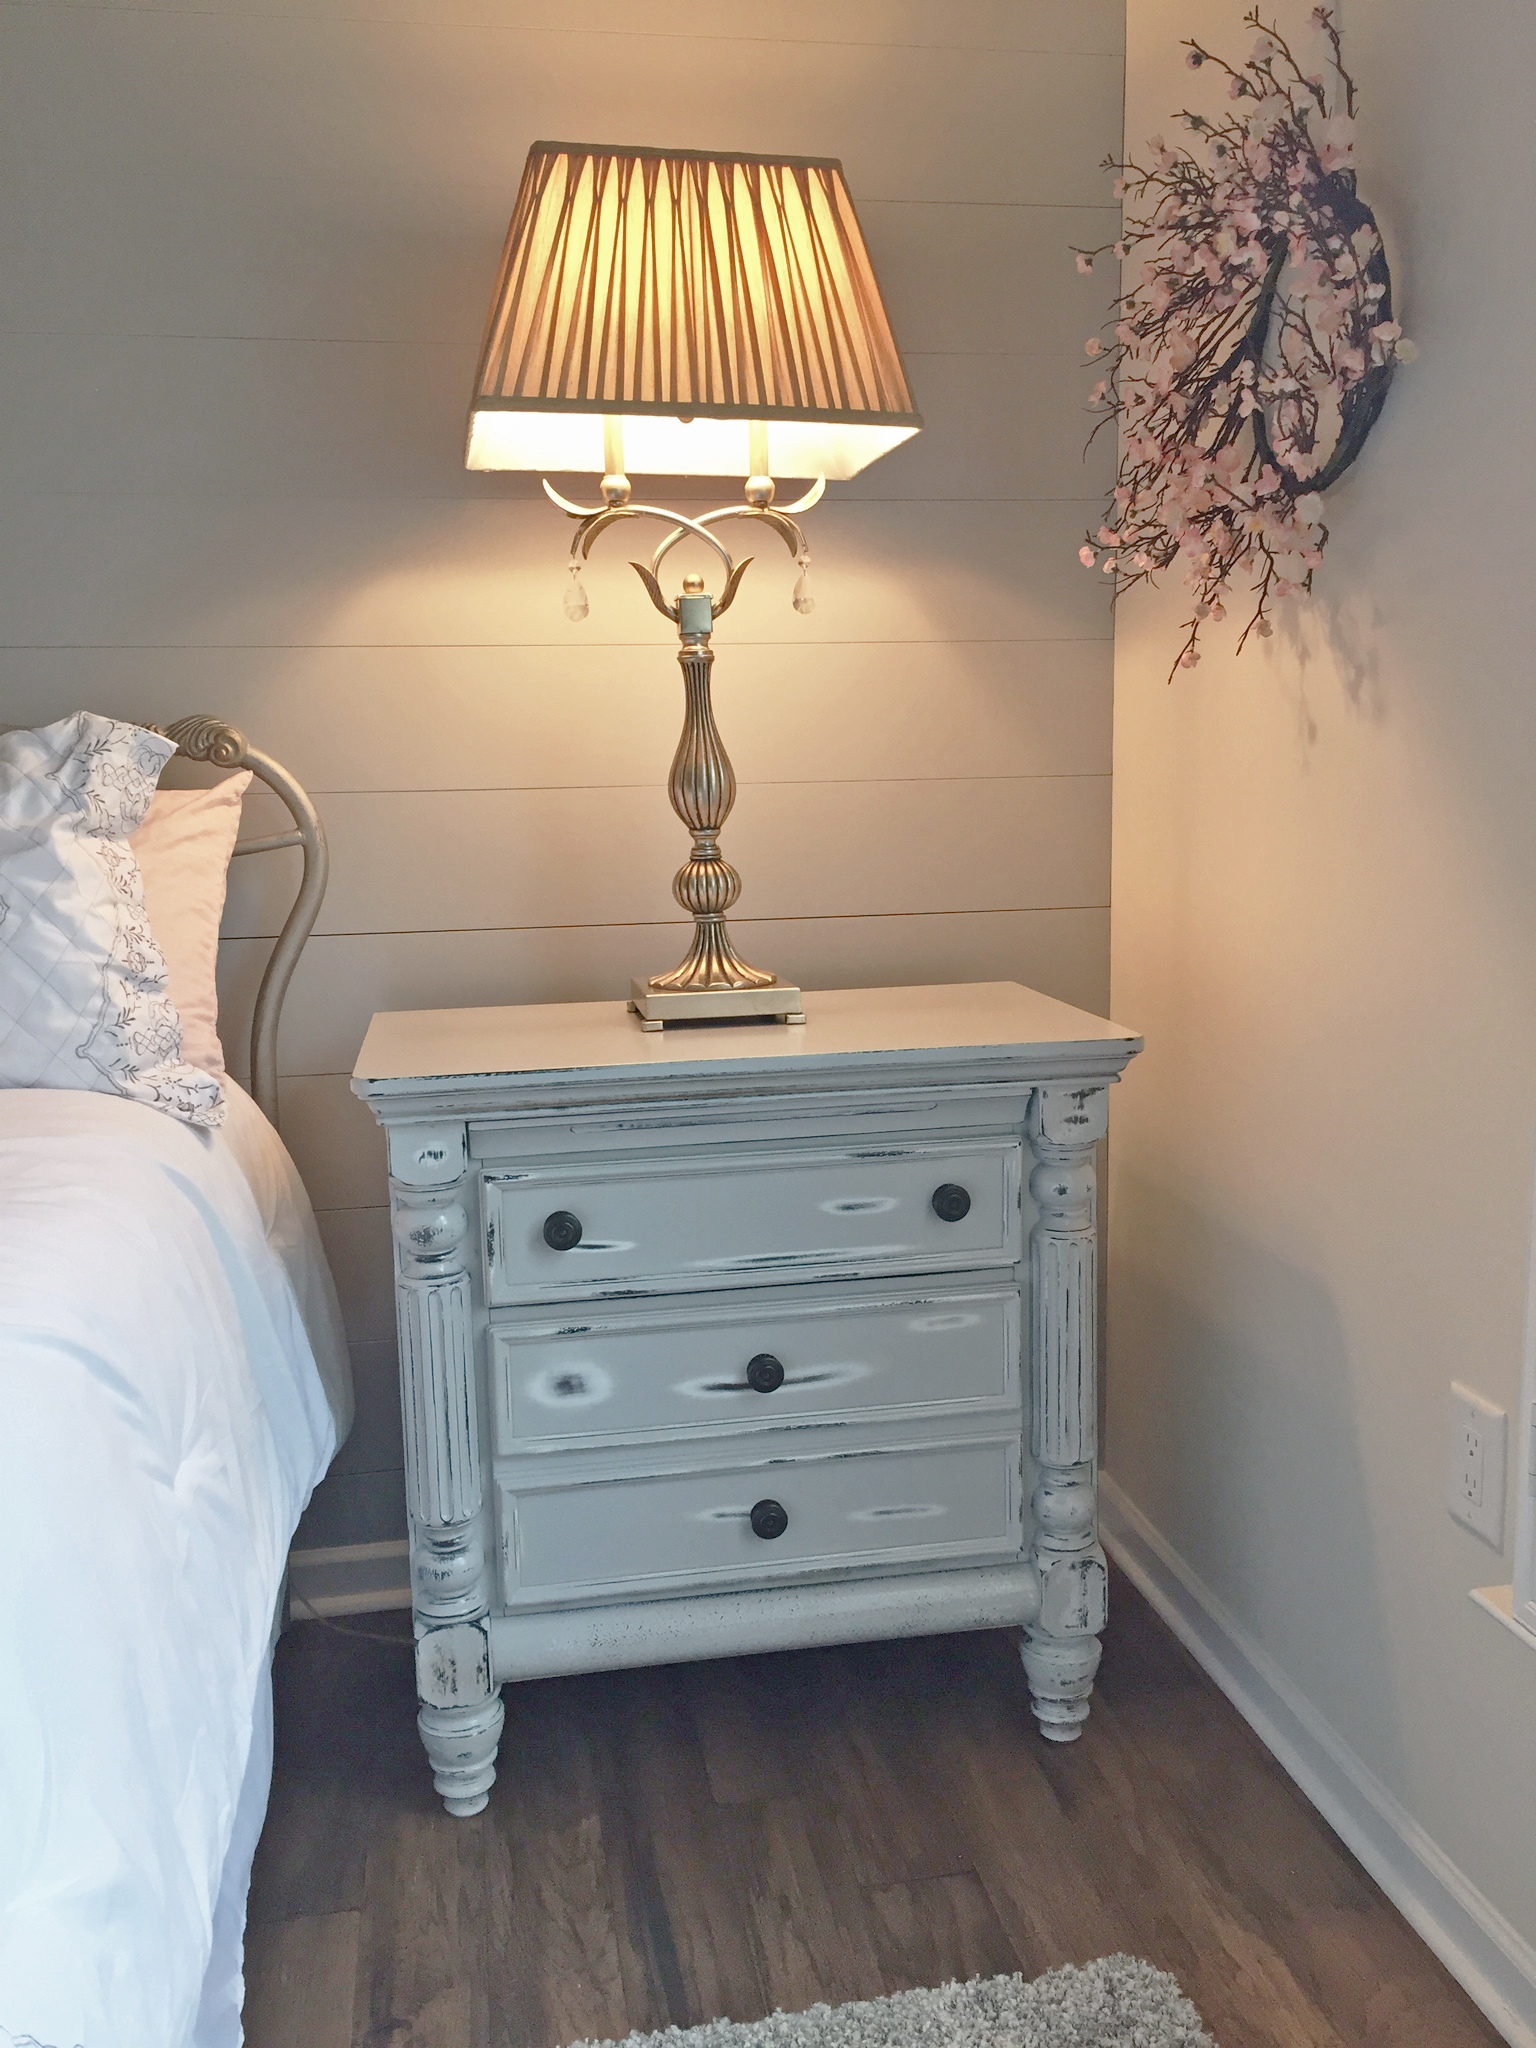 Distressed Bedroom Furniture with Shiplap Wall